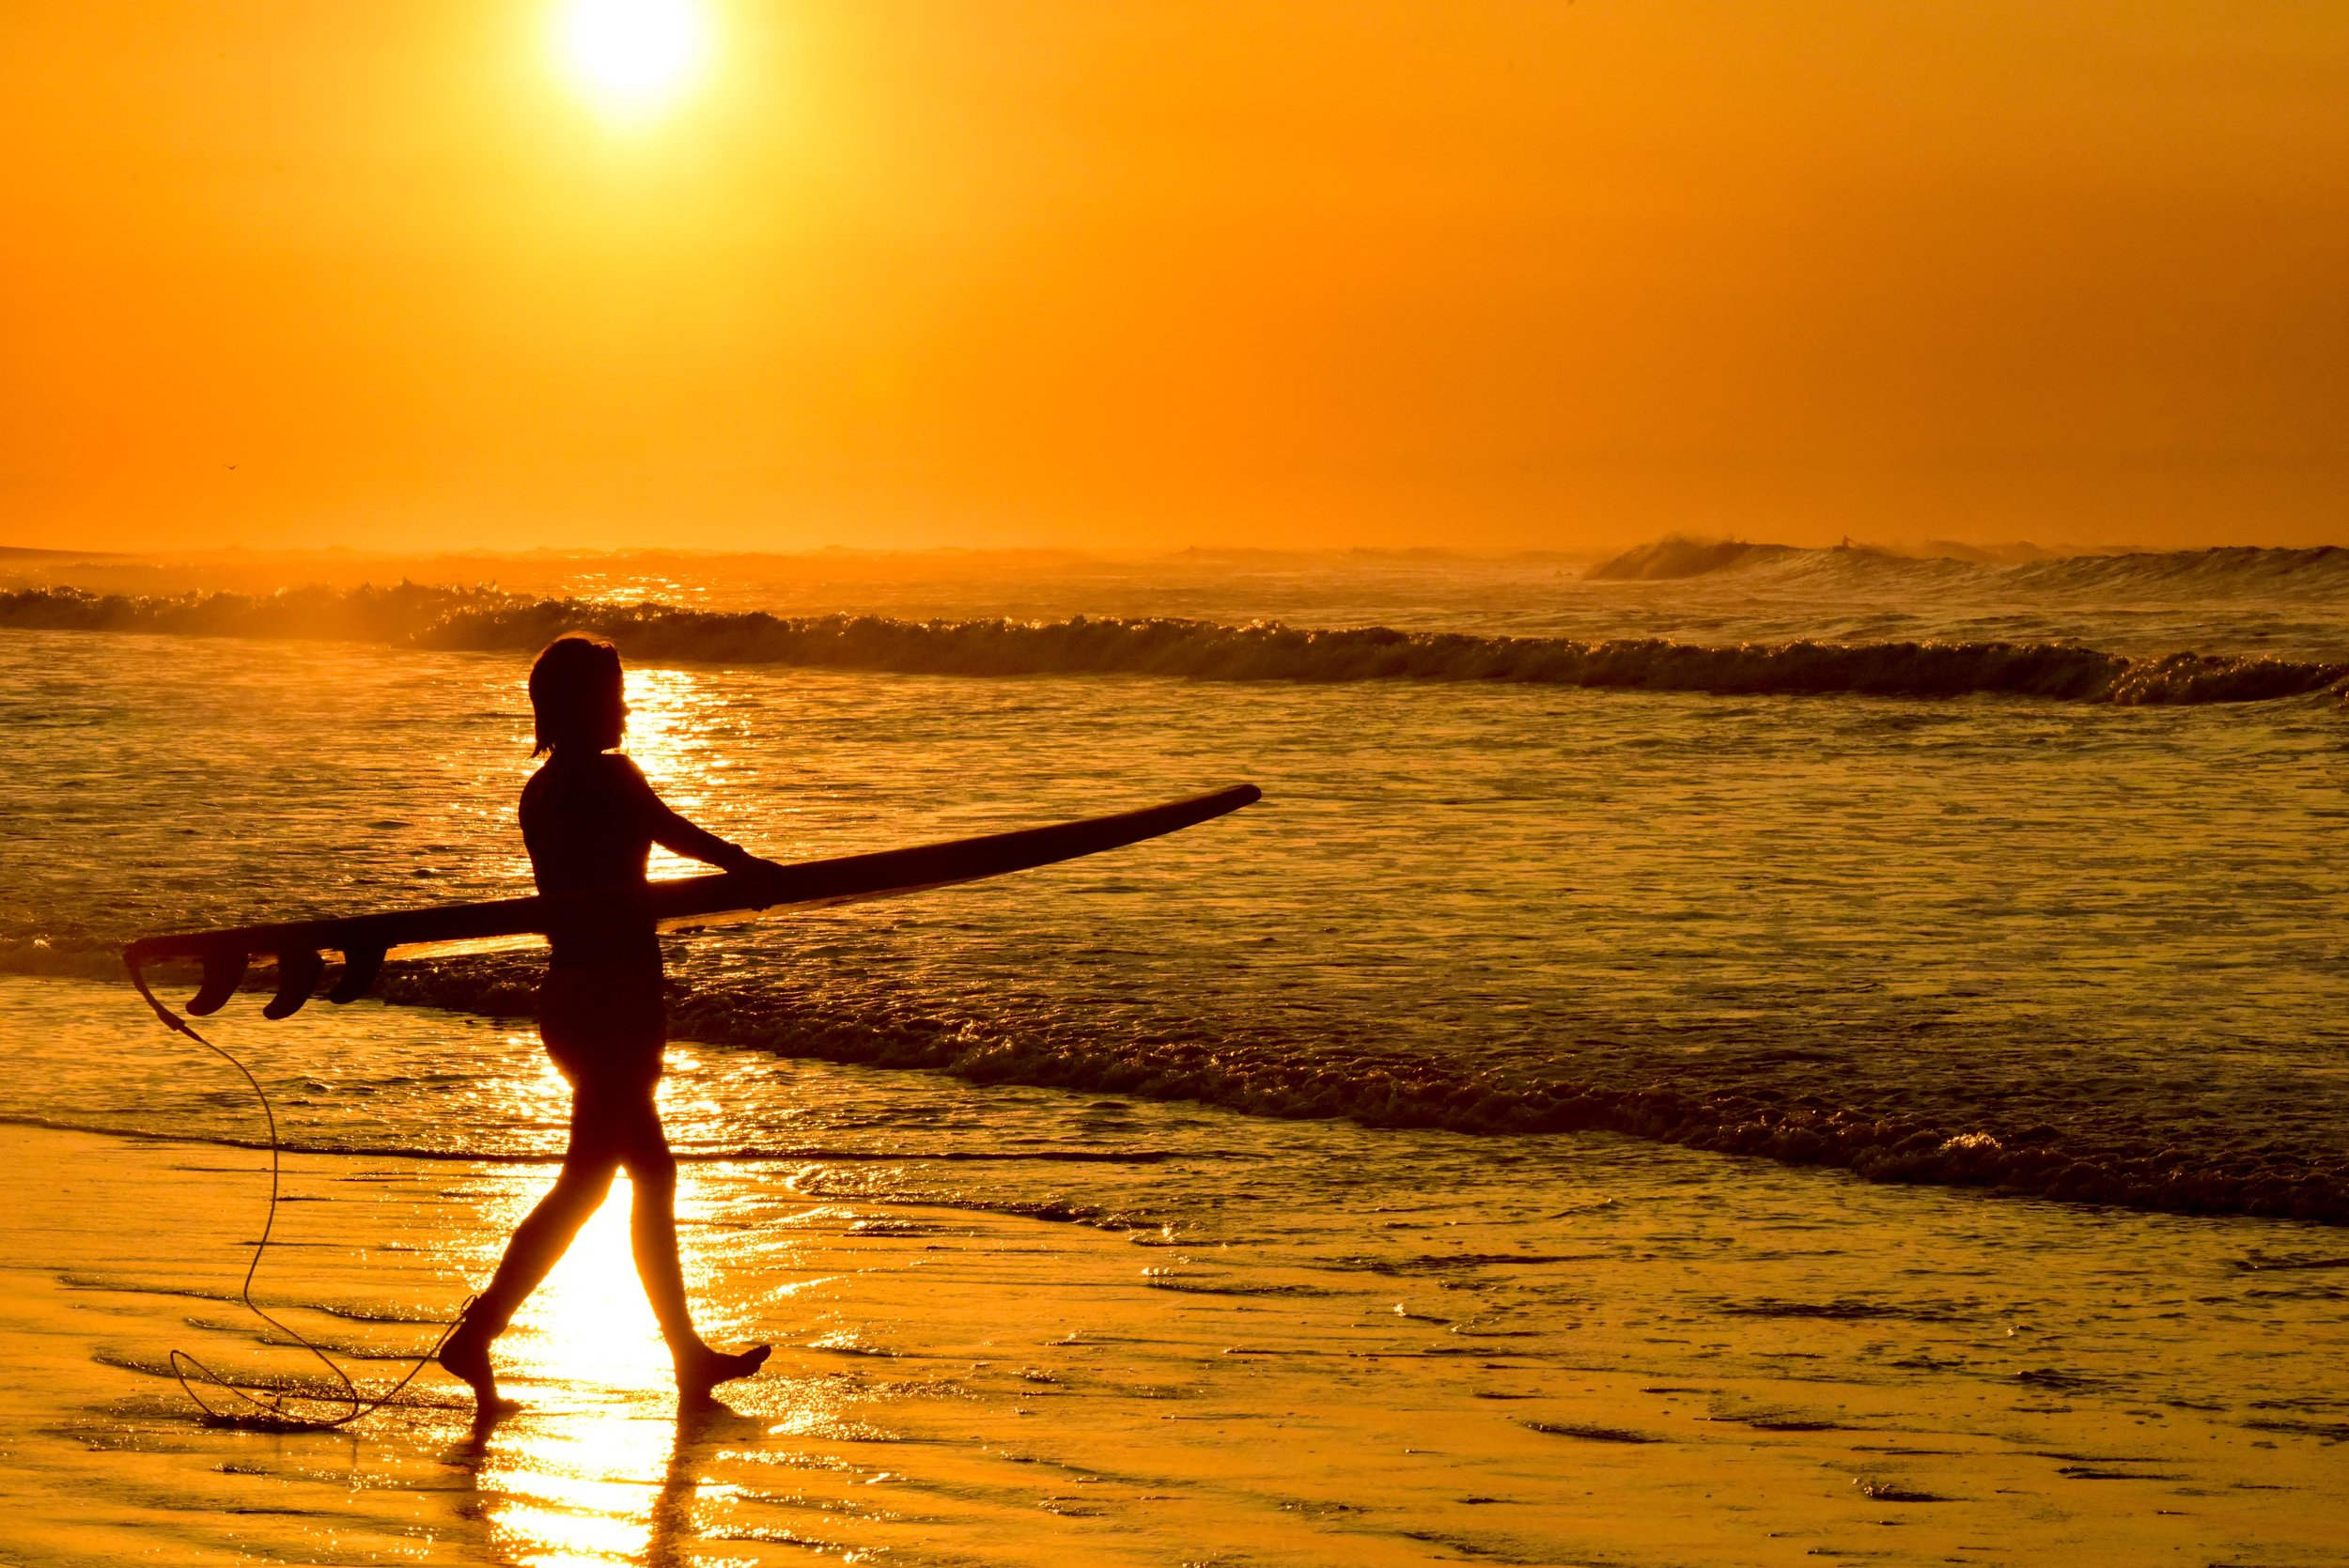 sunsets, surfboards, and S A N S A R A await ..